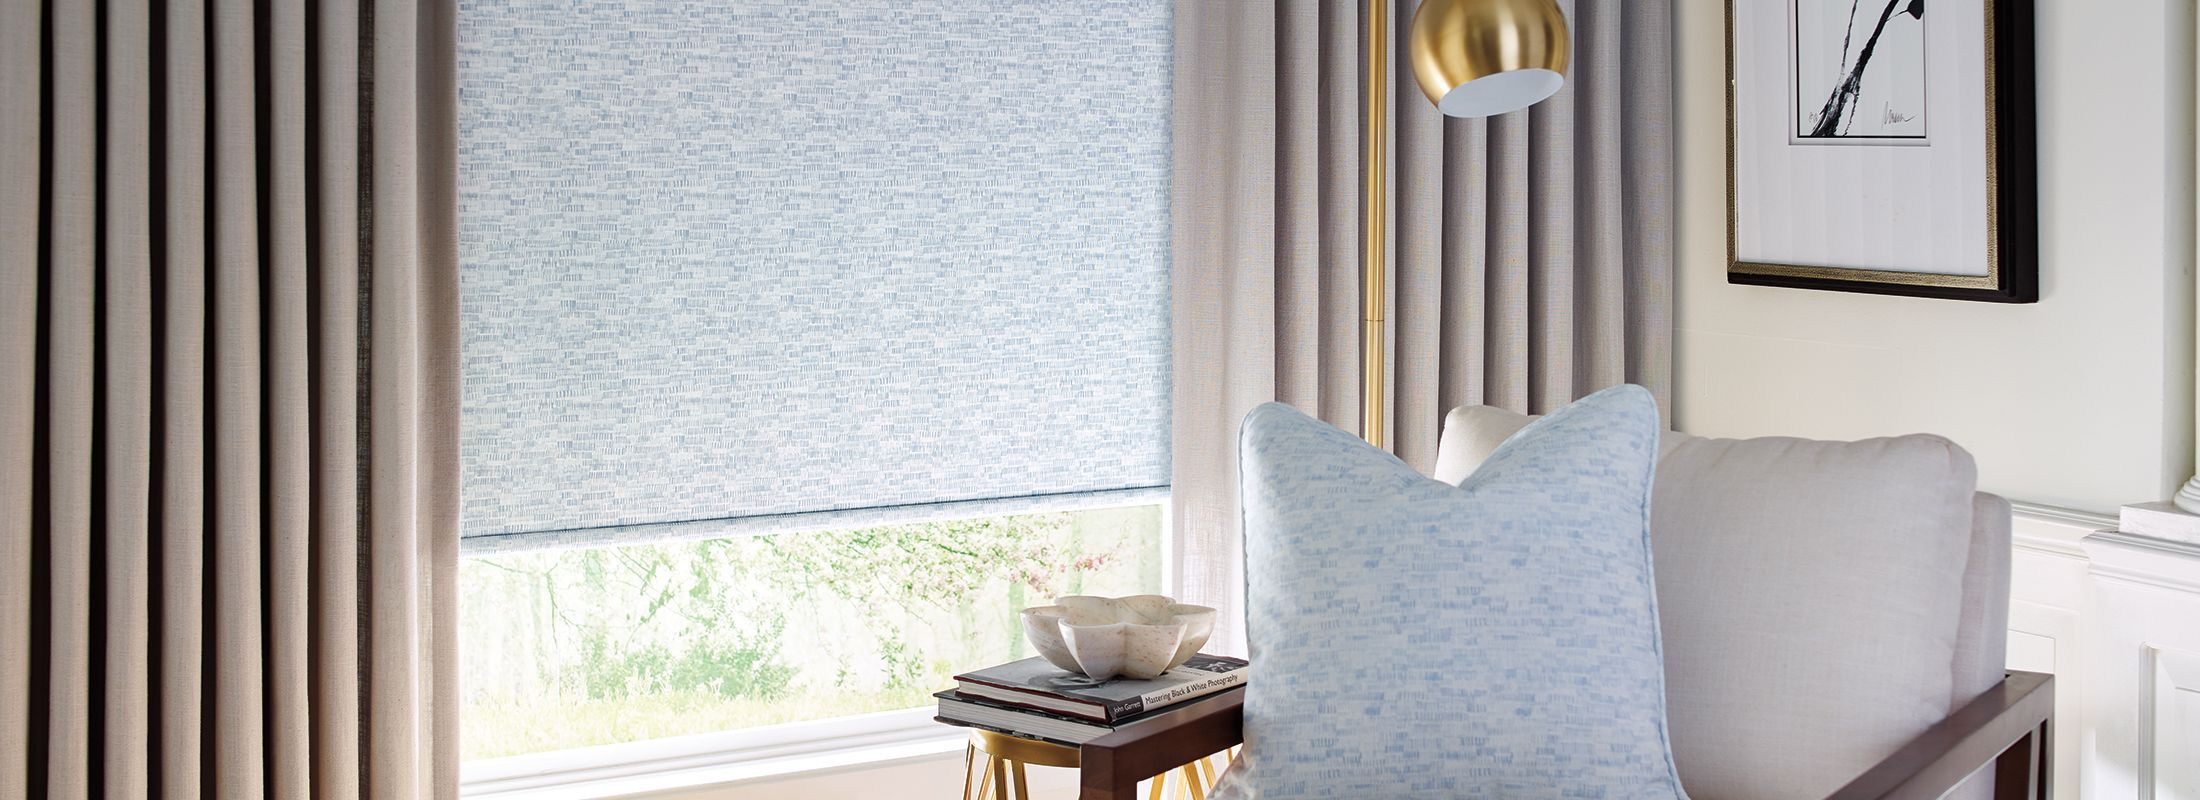 Design Studio Roller Shades in Field Green/Gray